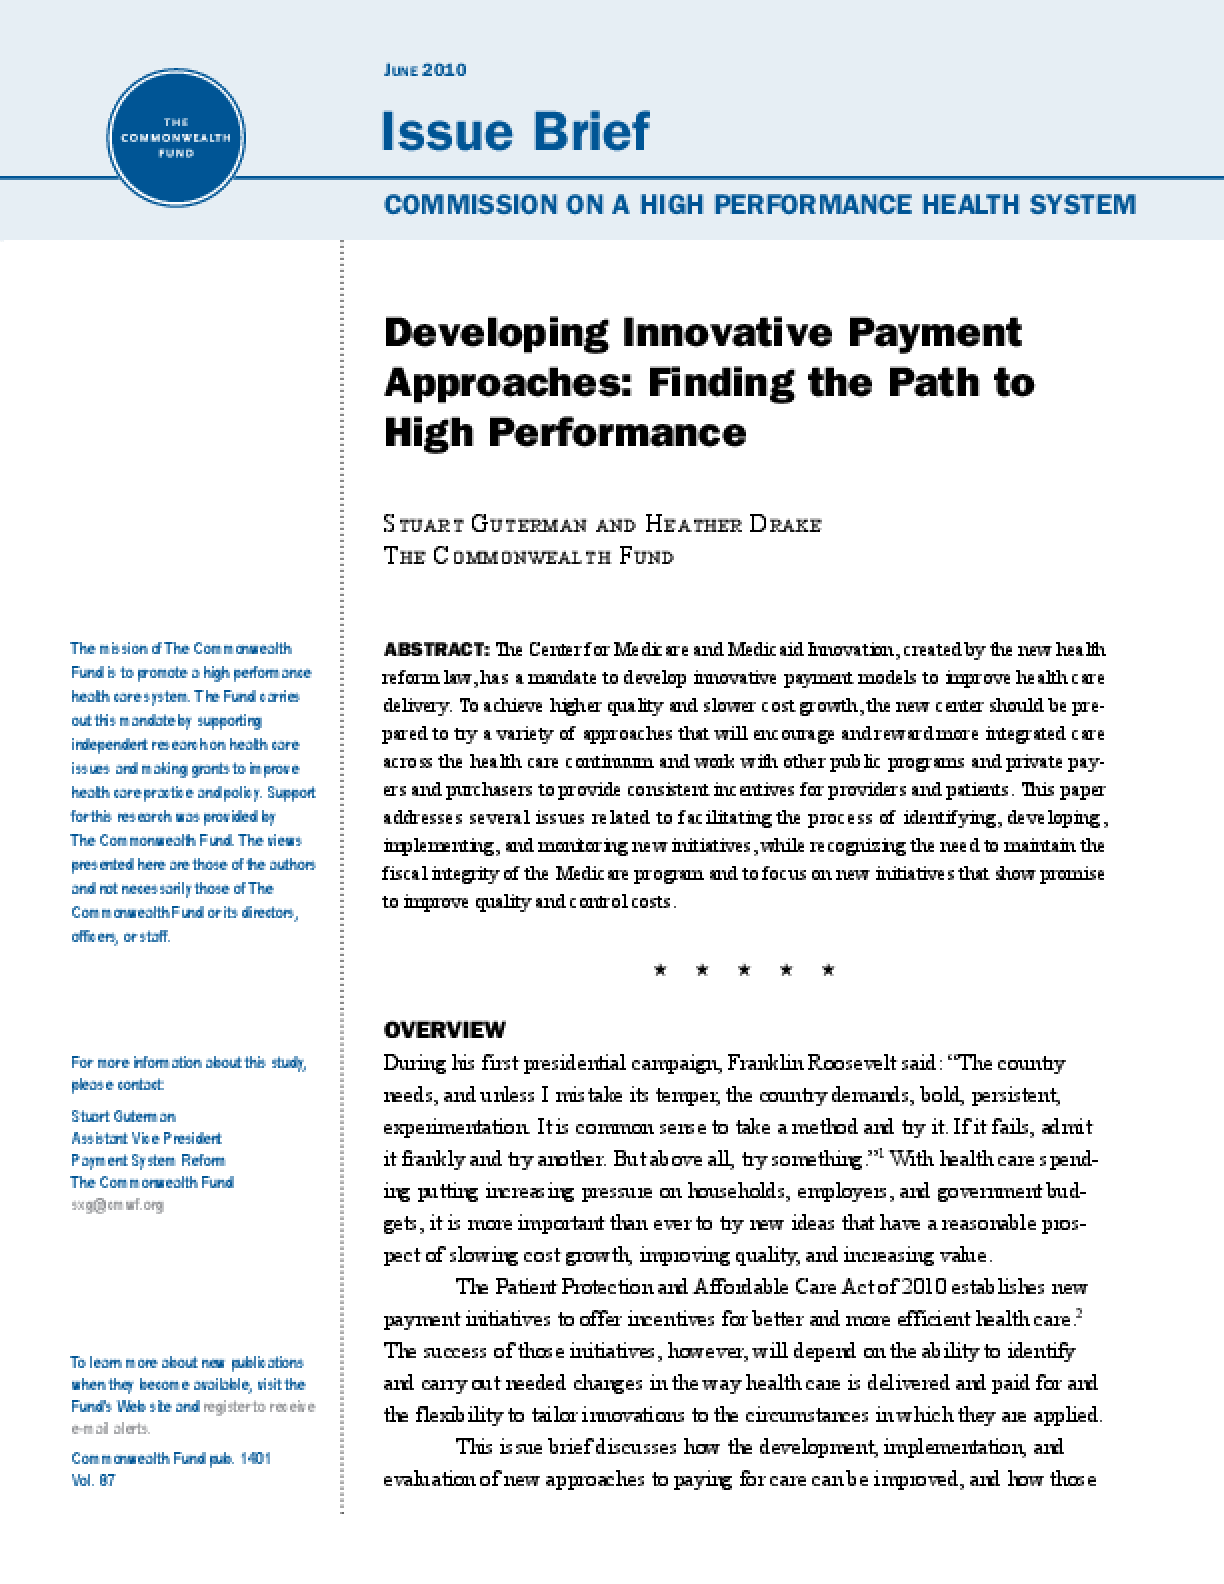 Developing Innovative Payment Approaches: Finding the Path to High Performance